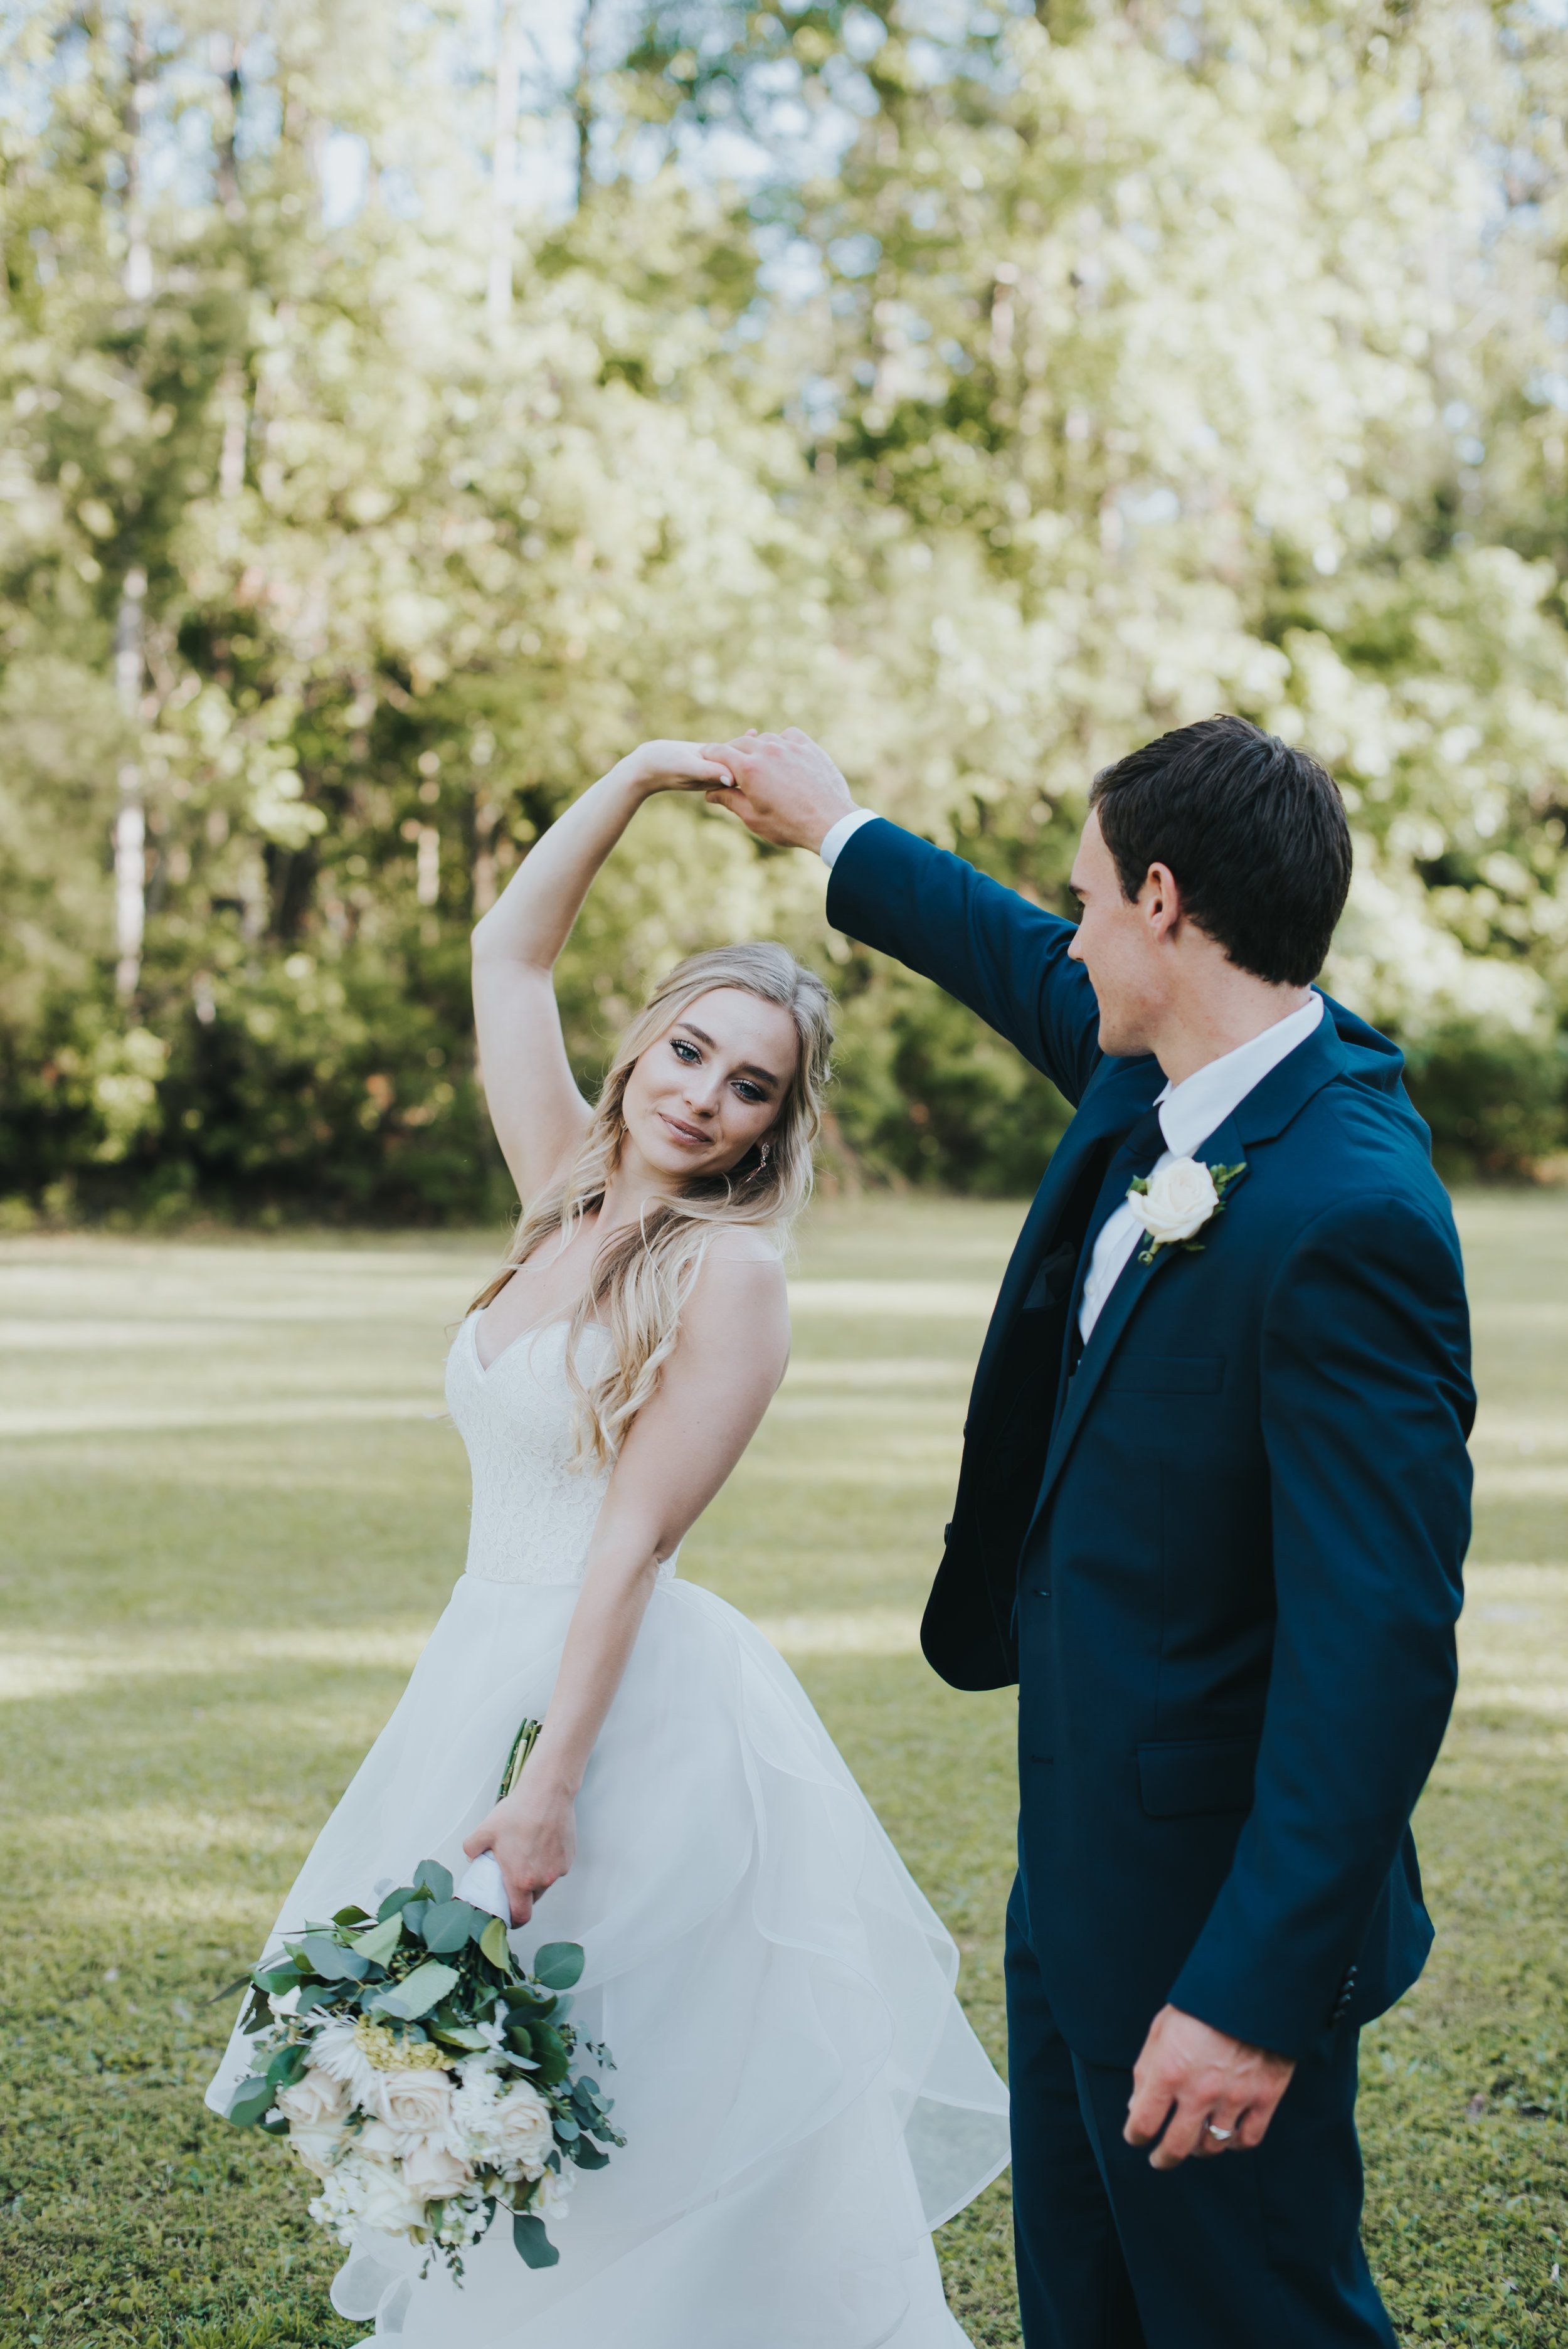 Adair + Sam 4.28.18-137.jpg